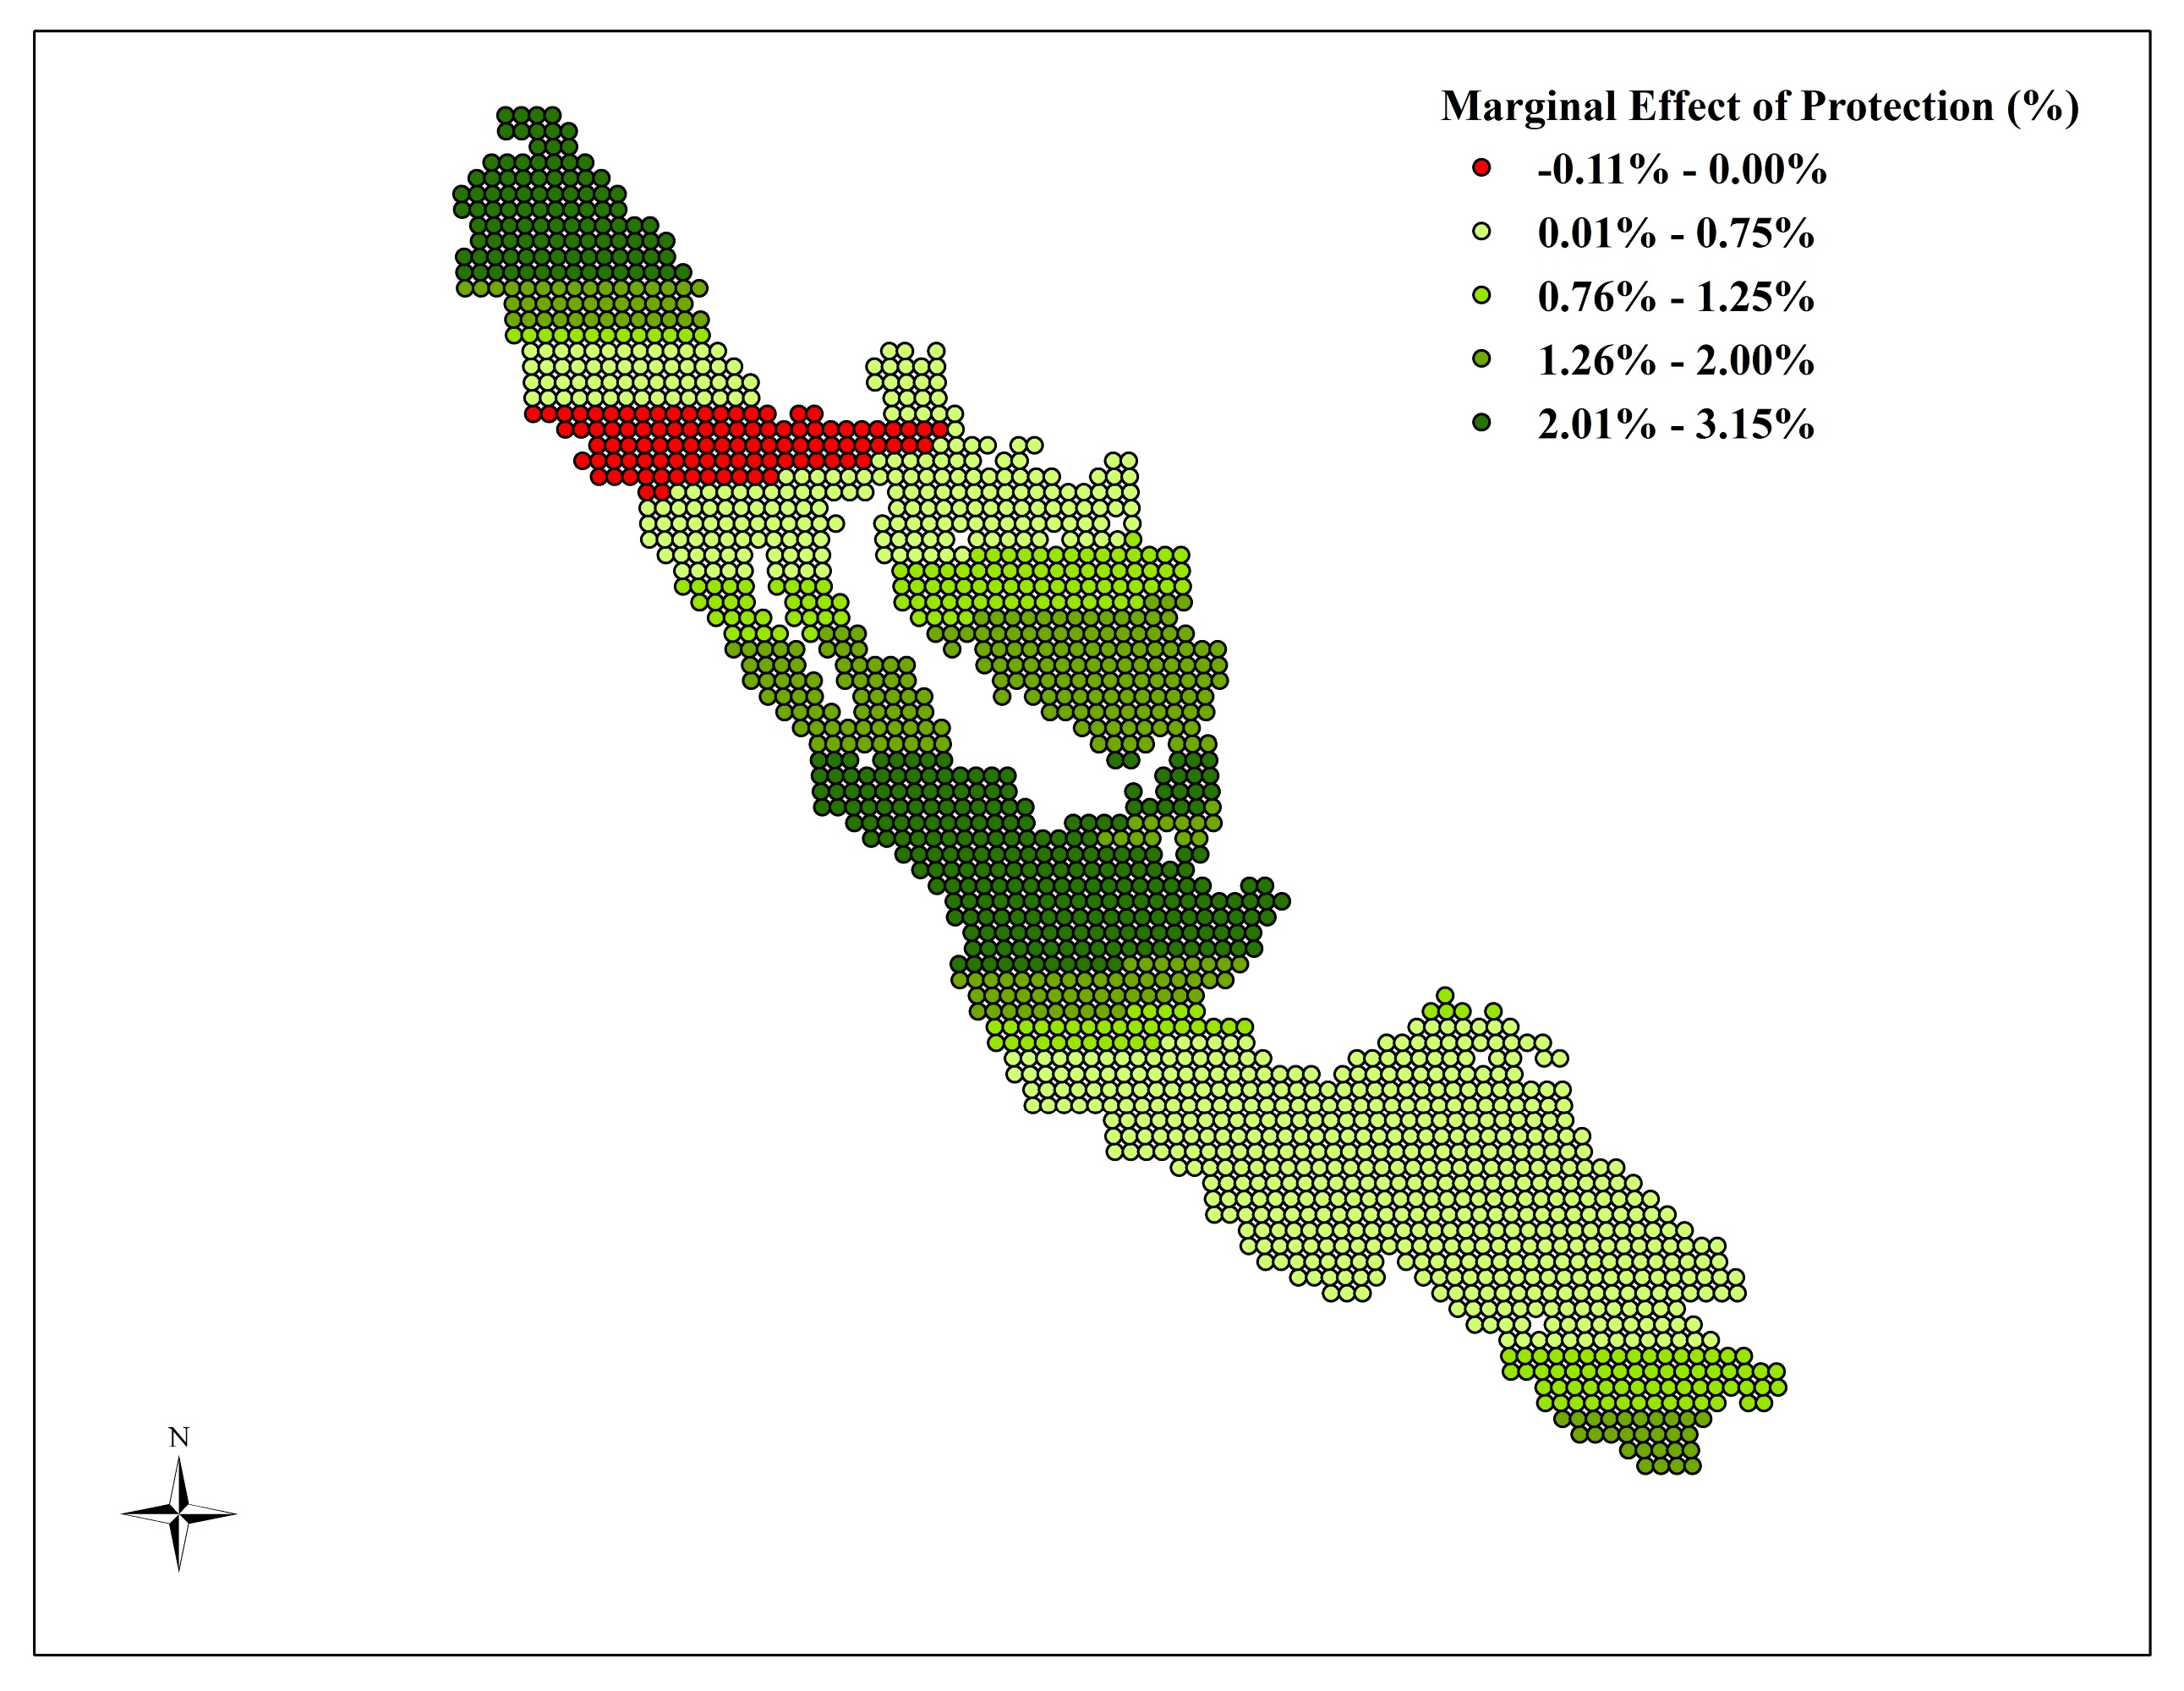 Variation in effect of protection within Kerinci Seblat National Park